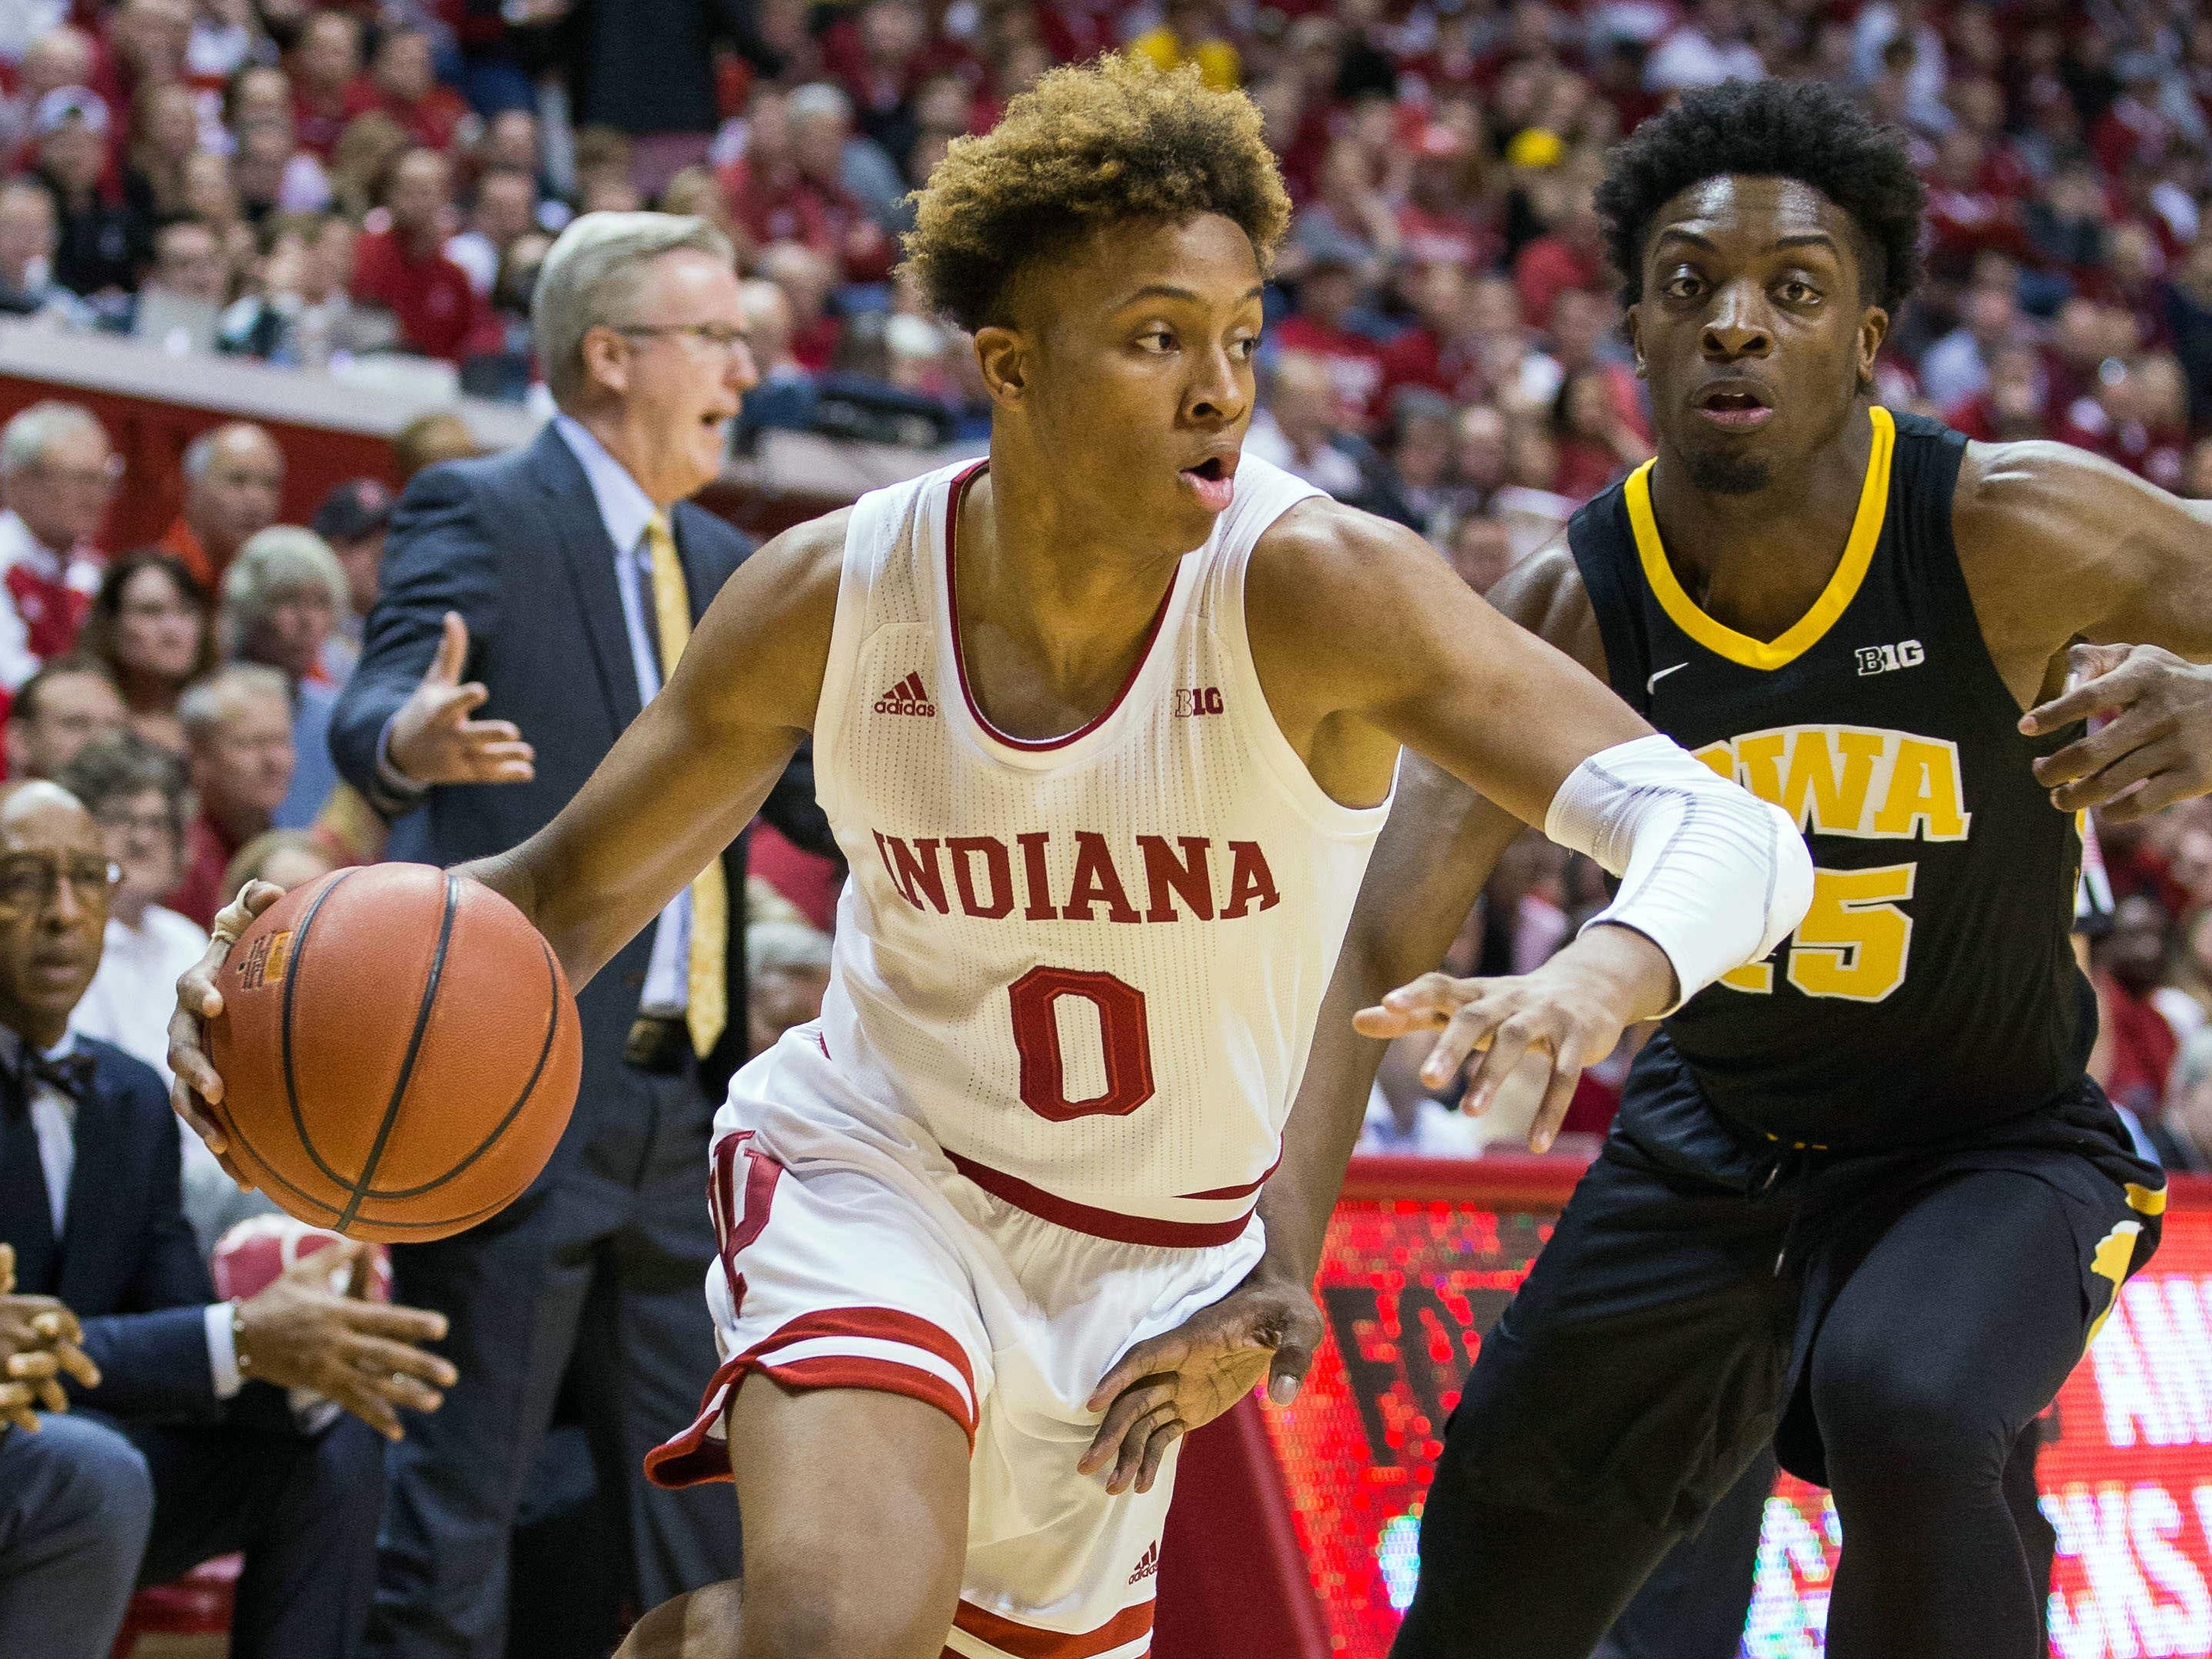 Feb 7, 2019; Bloomington, IN, USA; Indiana Hoosiers guard Romeo Langford (0) dribbles the ball around Iowa Hawkeyes forward Tyler Cook (25) in the first half at Assembly Hall.